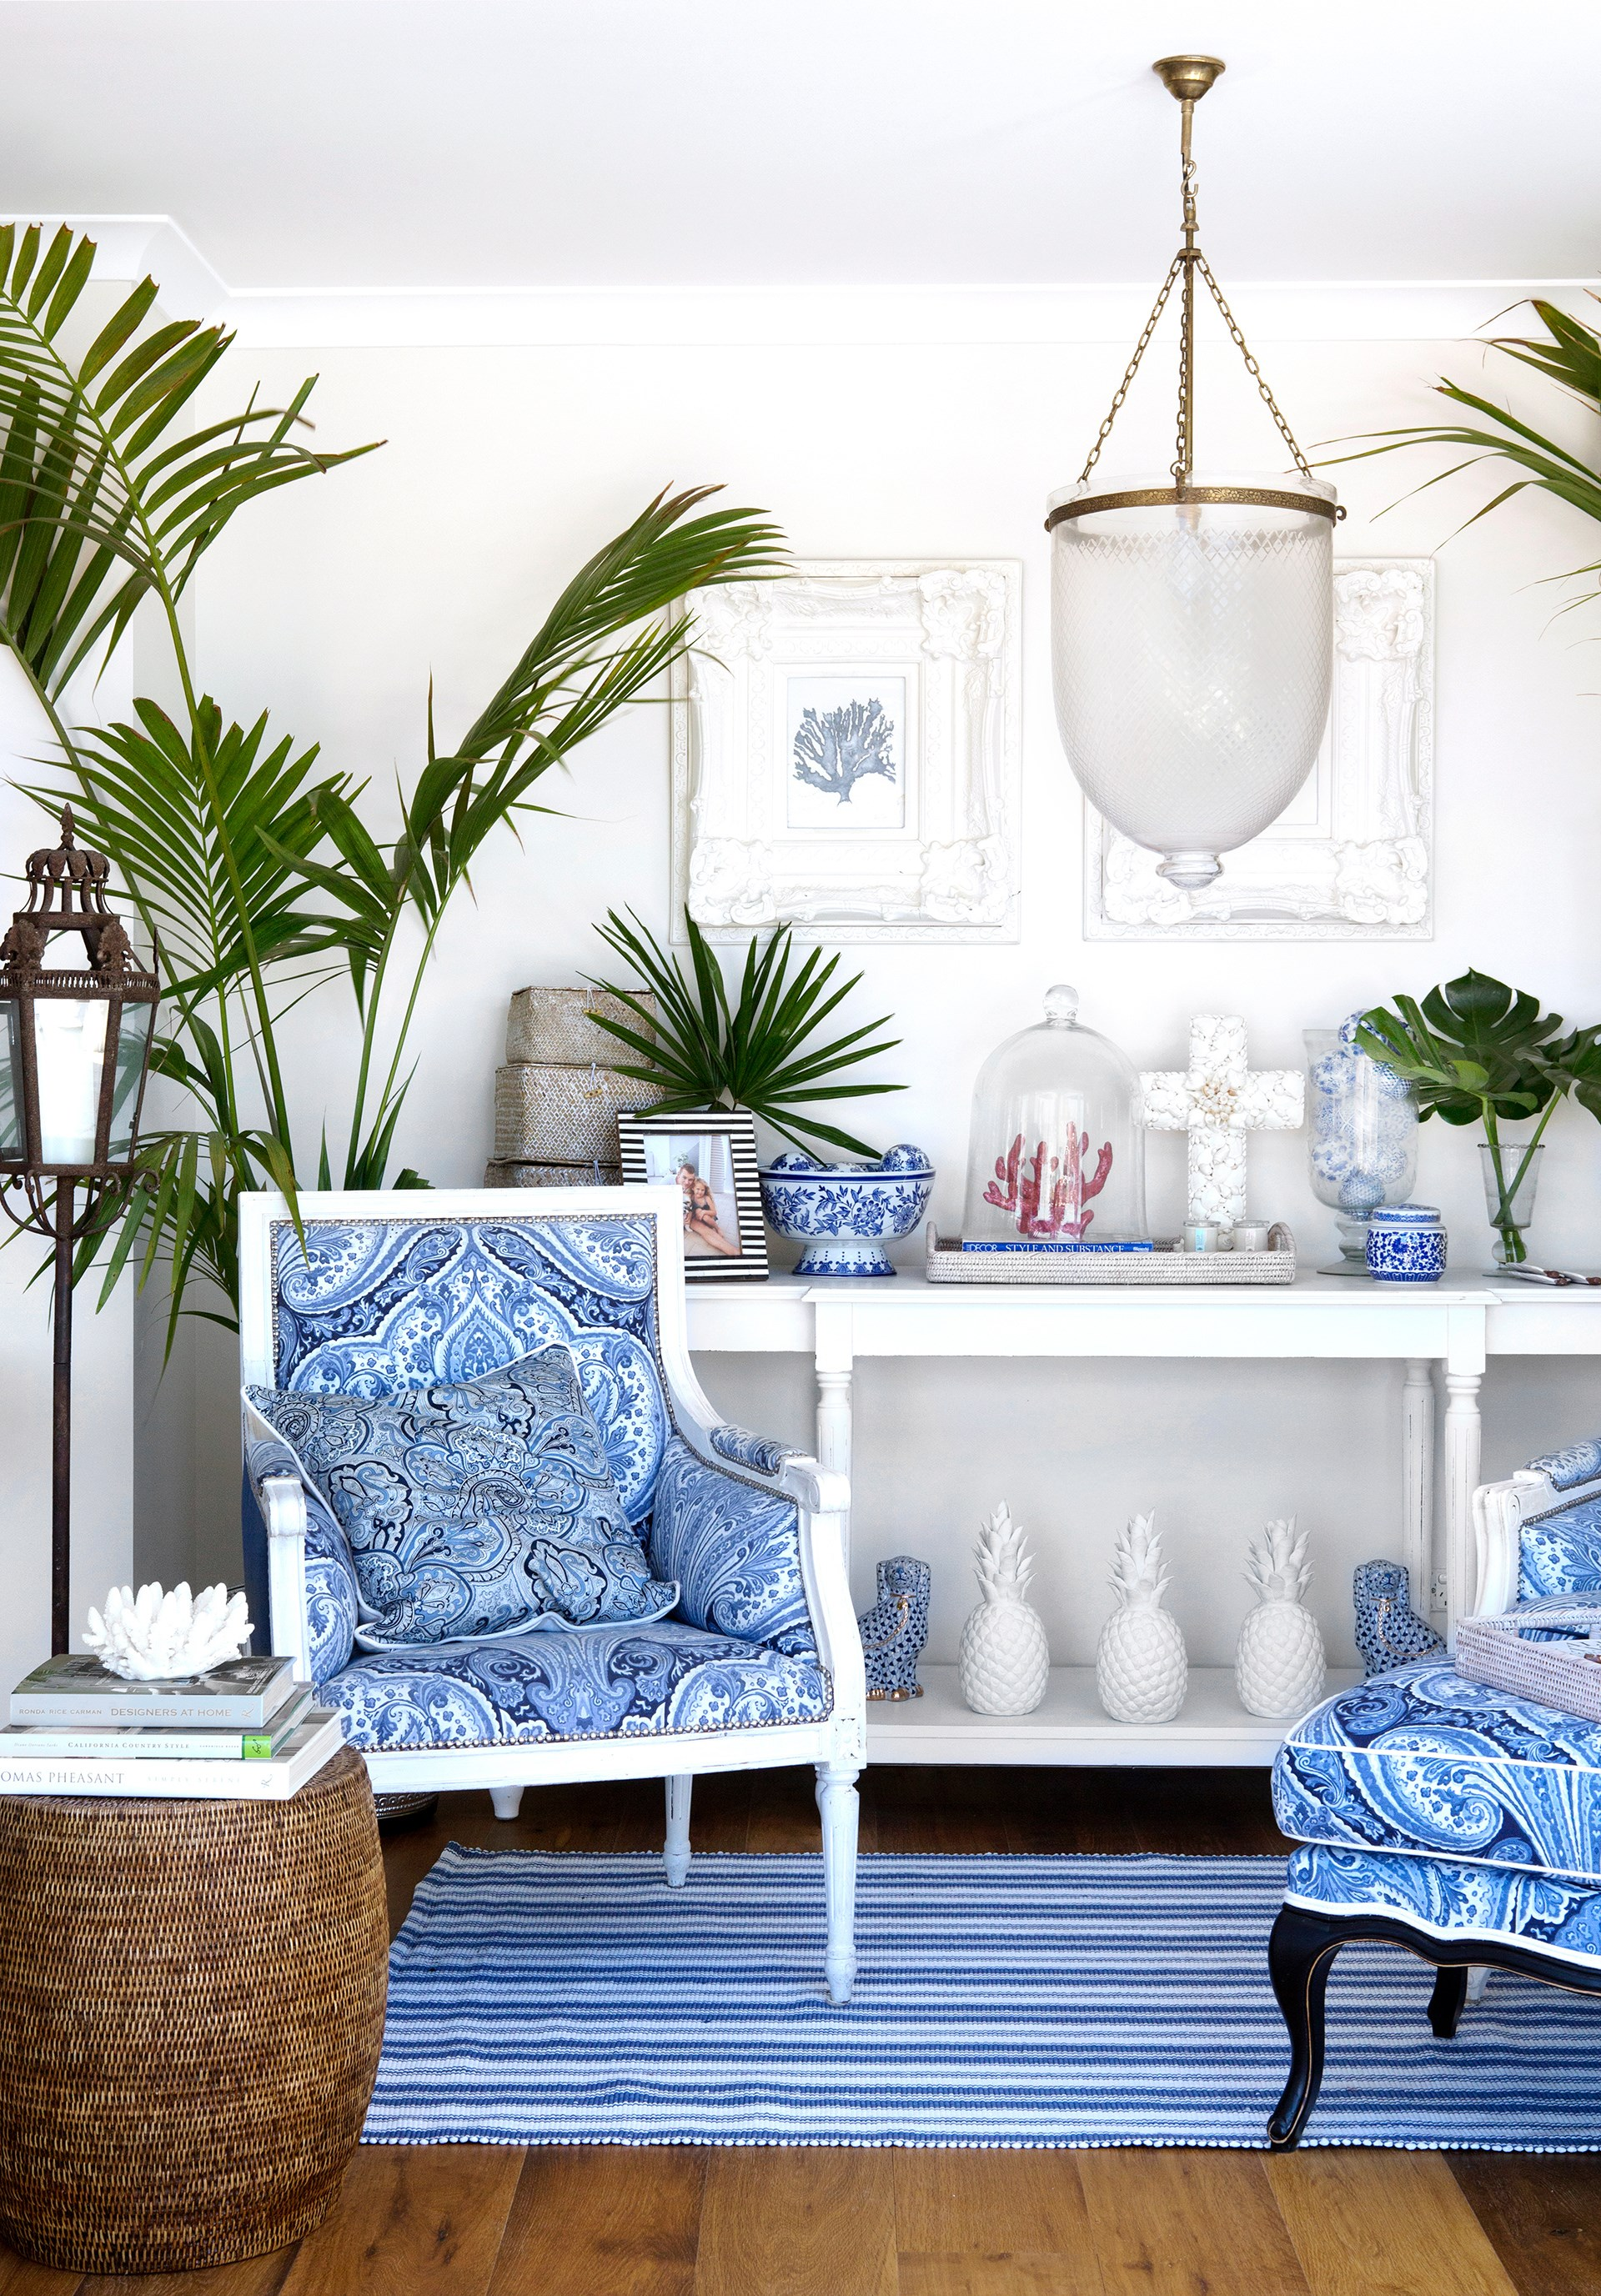 Elaborate Hamptons style and its picture-perfect waterfront location gives this [Perth home](http://www.homestolove.com.au/gallery-hamptons-style-comes-to-life-in-perth-2328) a seaside resort feel. Photo: Angelita Bonetti / Australian House & Garden